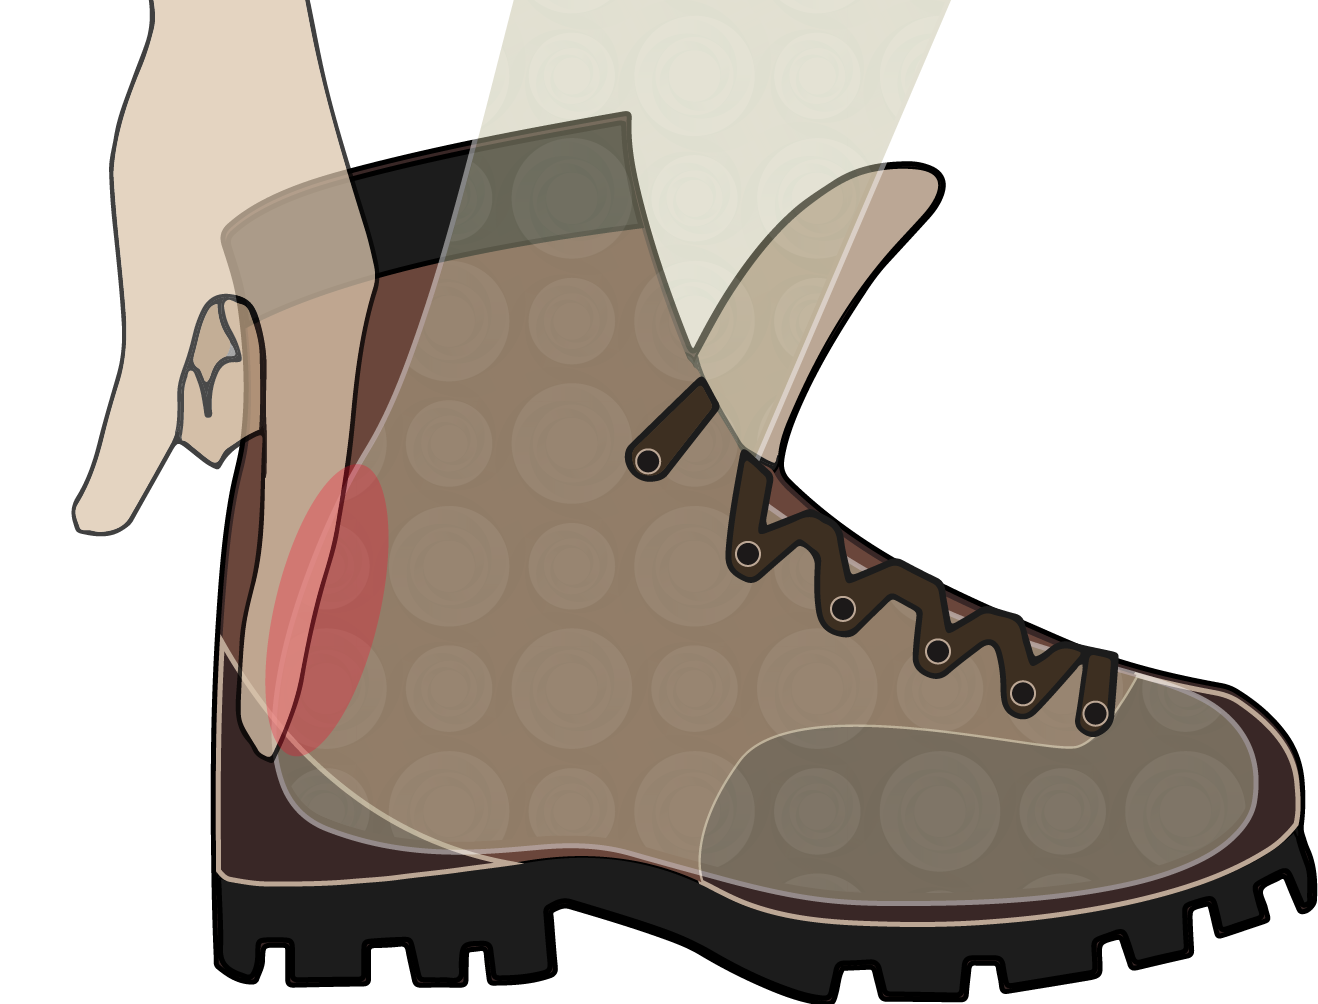 Hike clipart brown boot. Footwear bushwalking howtofithikingbootse lace